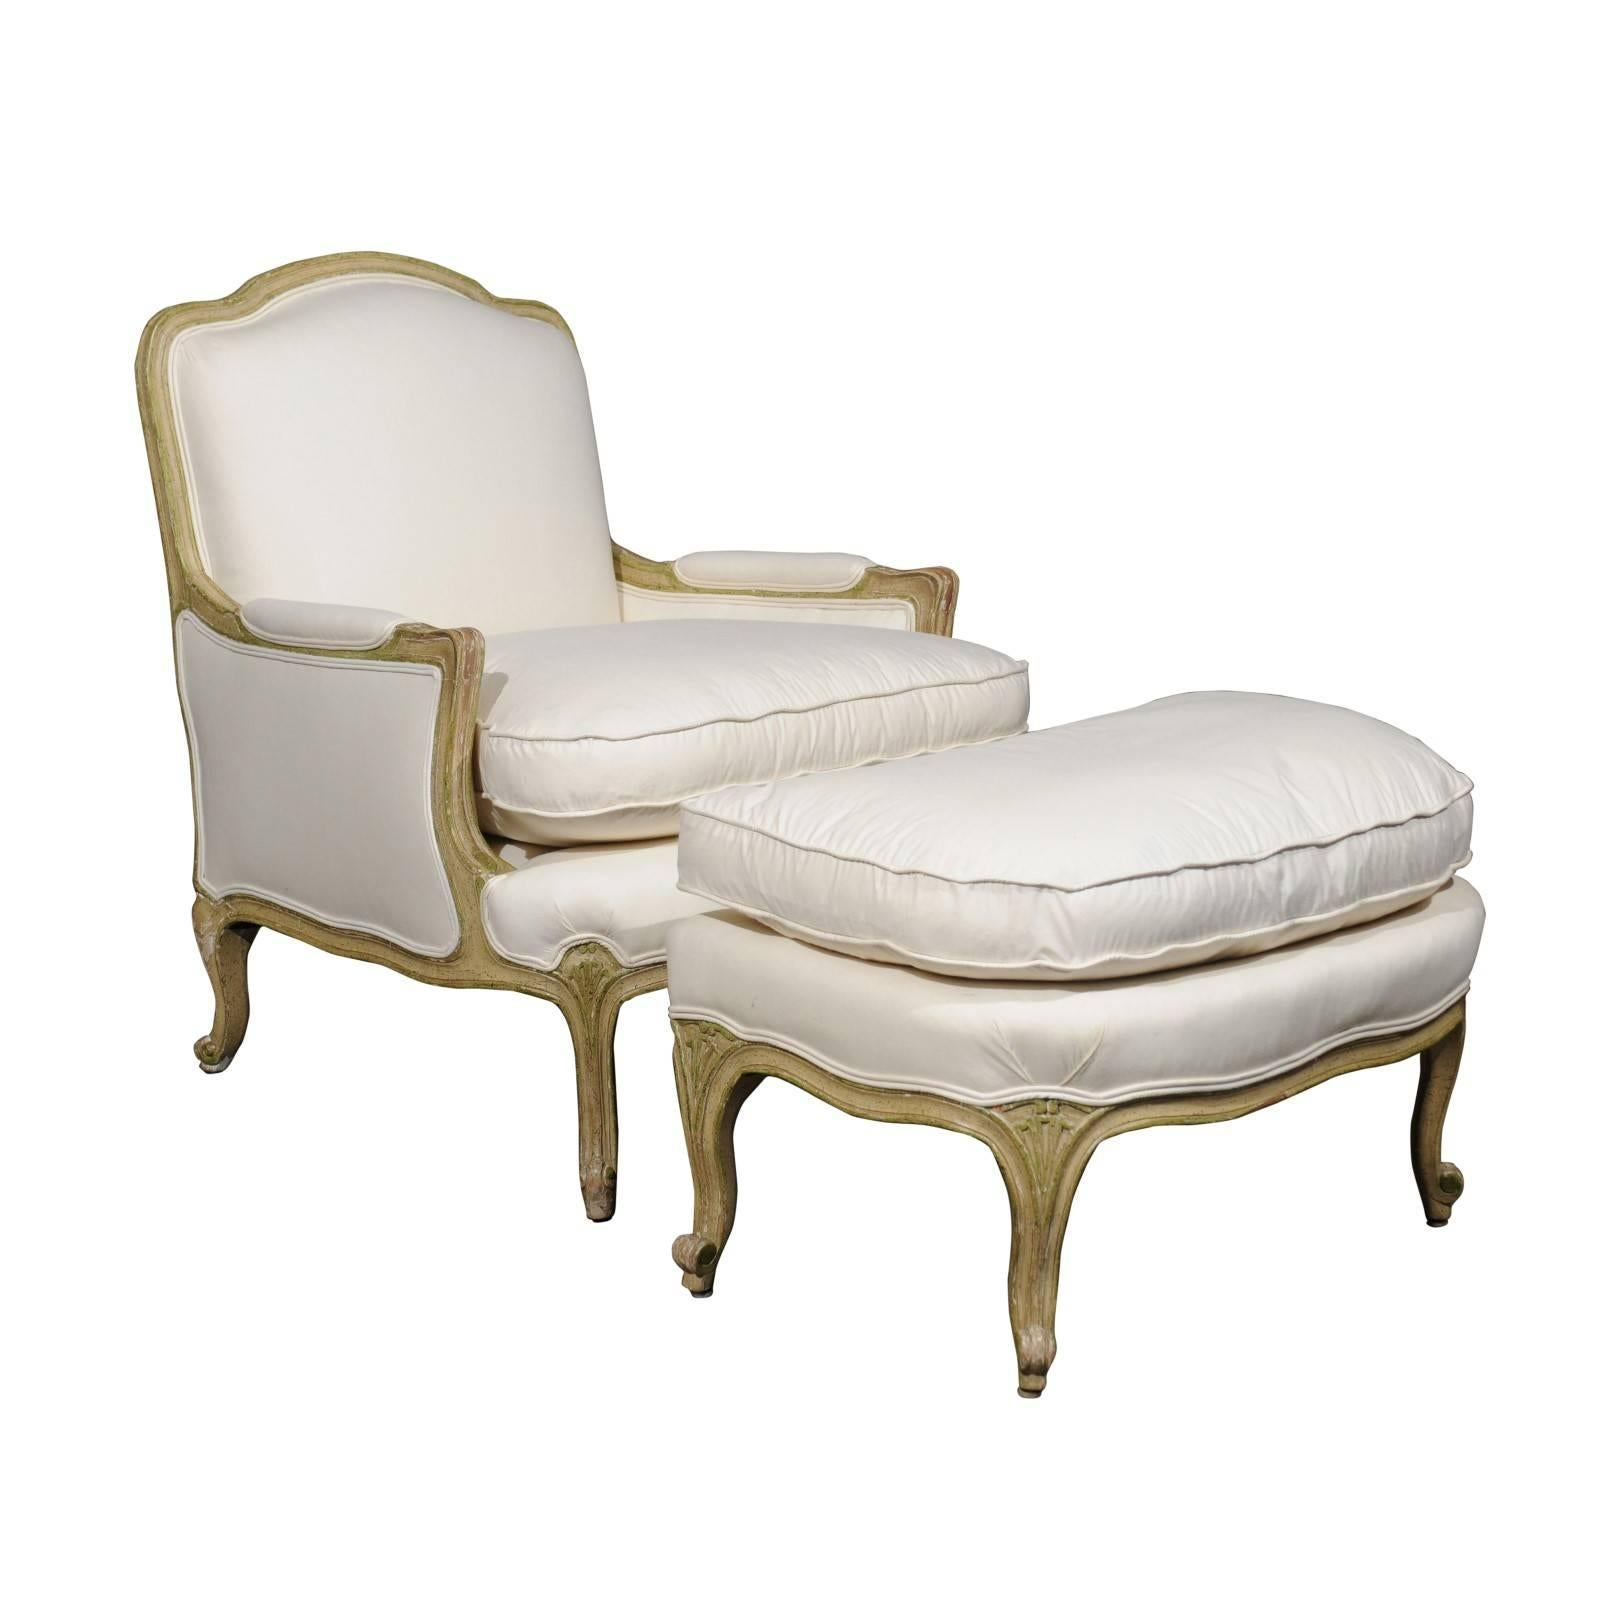 Attirant Louis XV French Bergère Chair And Ottoman From The 18th Century,  Reupholstered For Sale